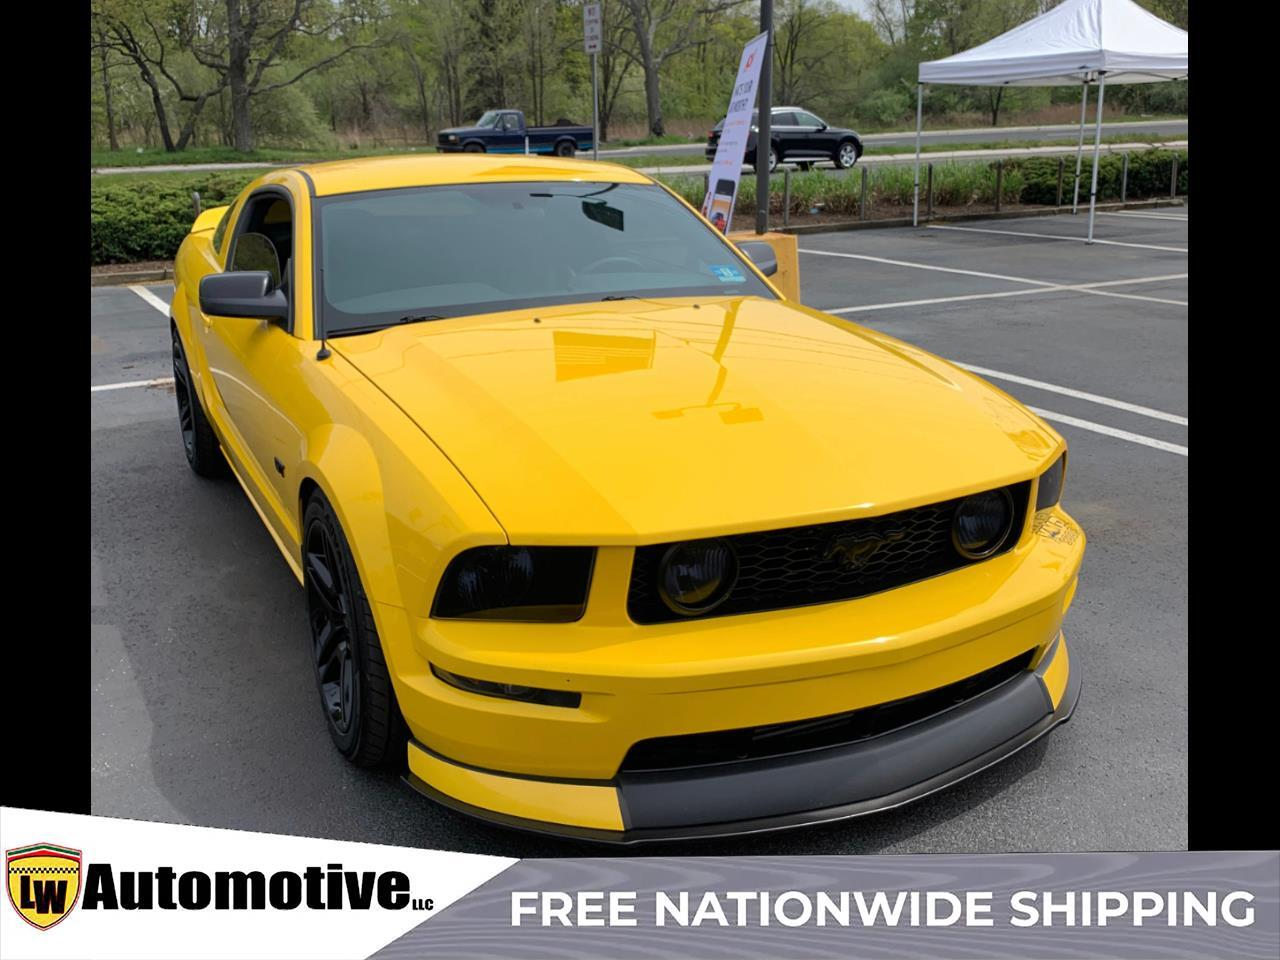 2005 Ford Mustang 2dr Cpe GT